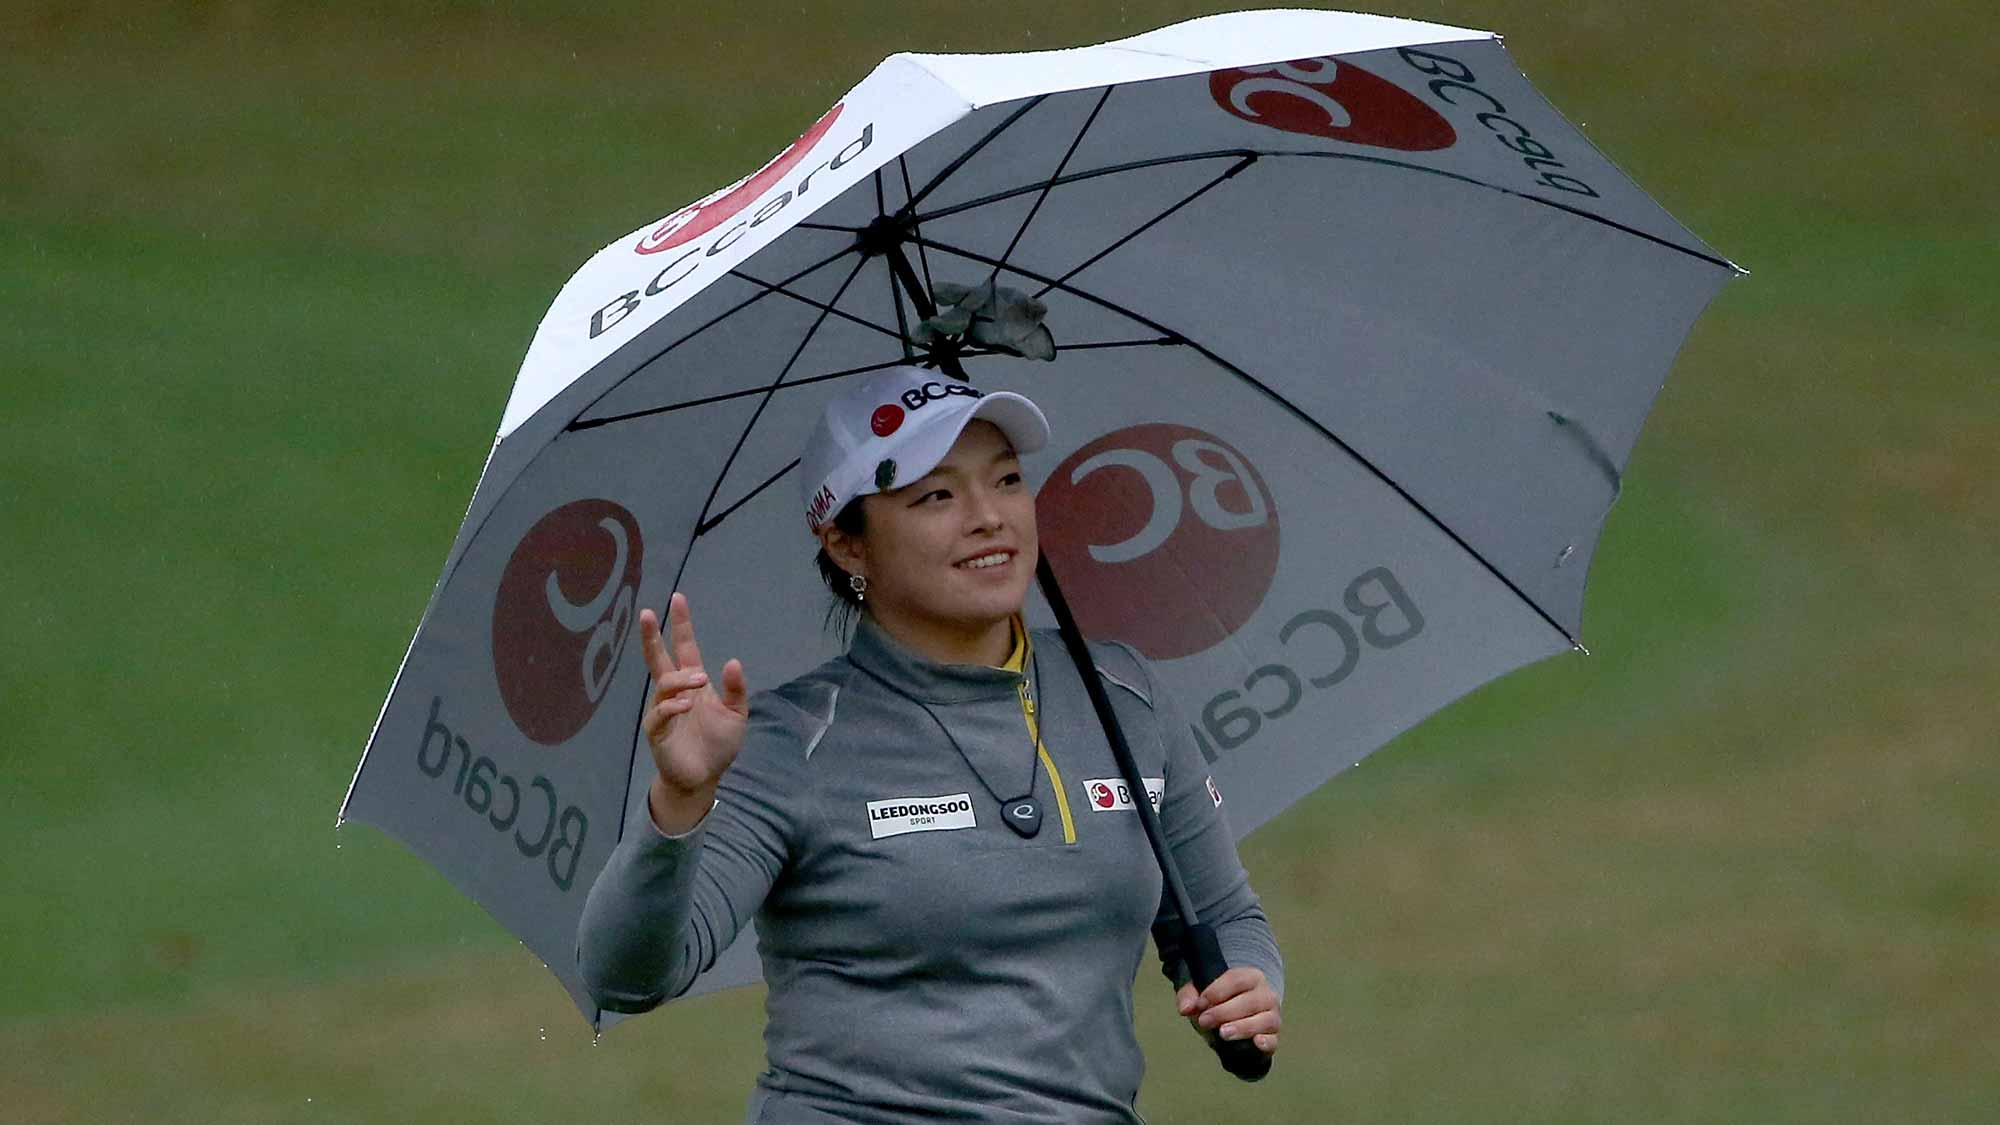 Ha Na Jang of South Korea acknowledges the crowd on the 18th hole during the final round of the Coates Golf Championship Presented By R+L Carriers at Golden Ocala Golf Club